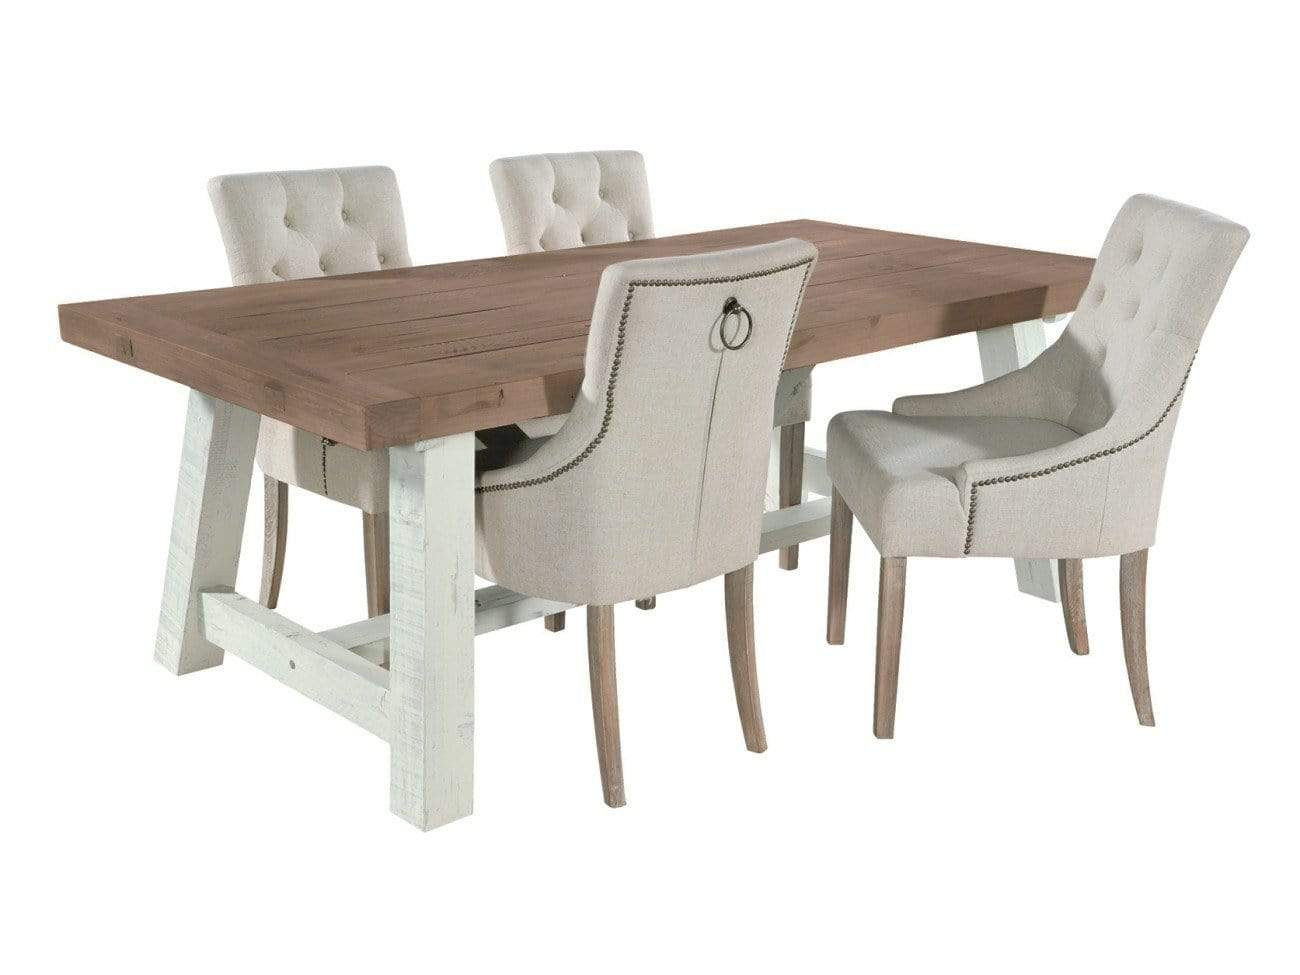 Picture of: Reclaimed Wood Dining Tables Chairs Benches Greenway Furniture